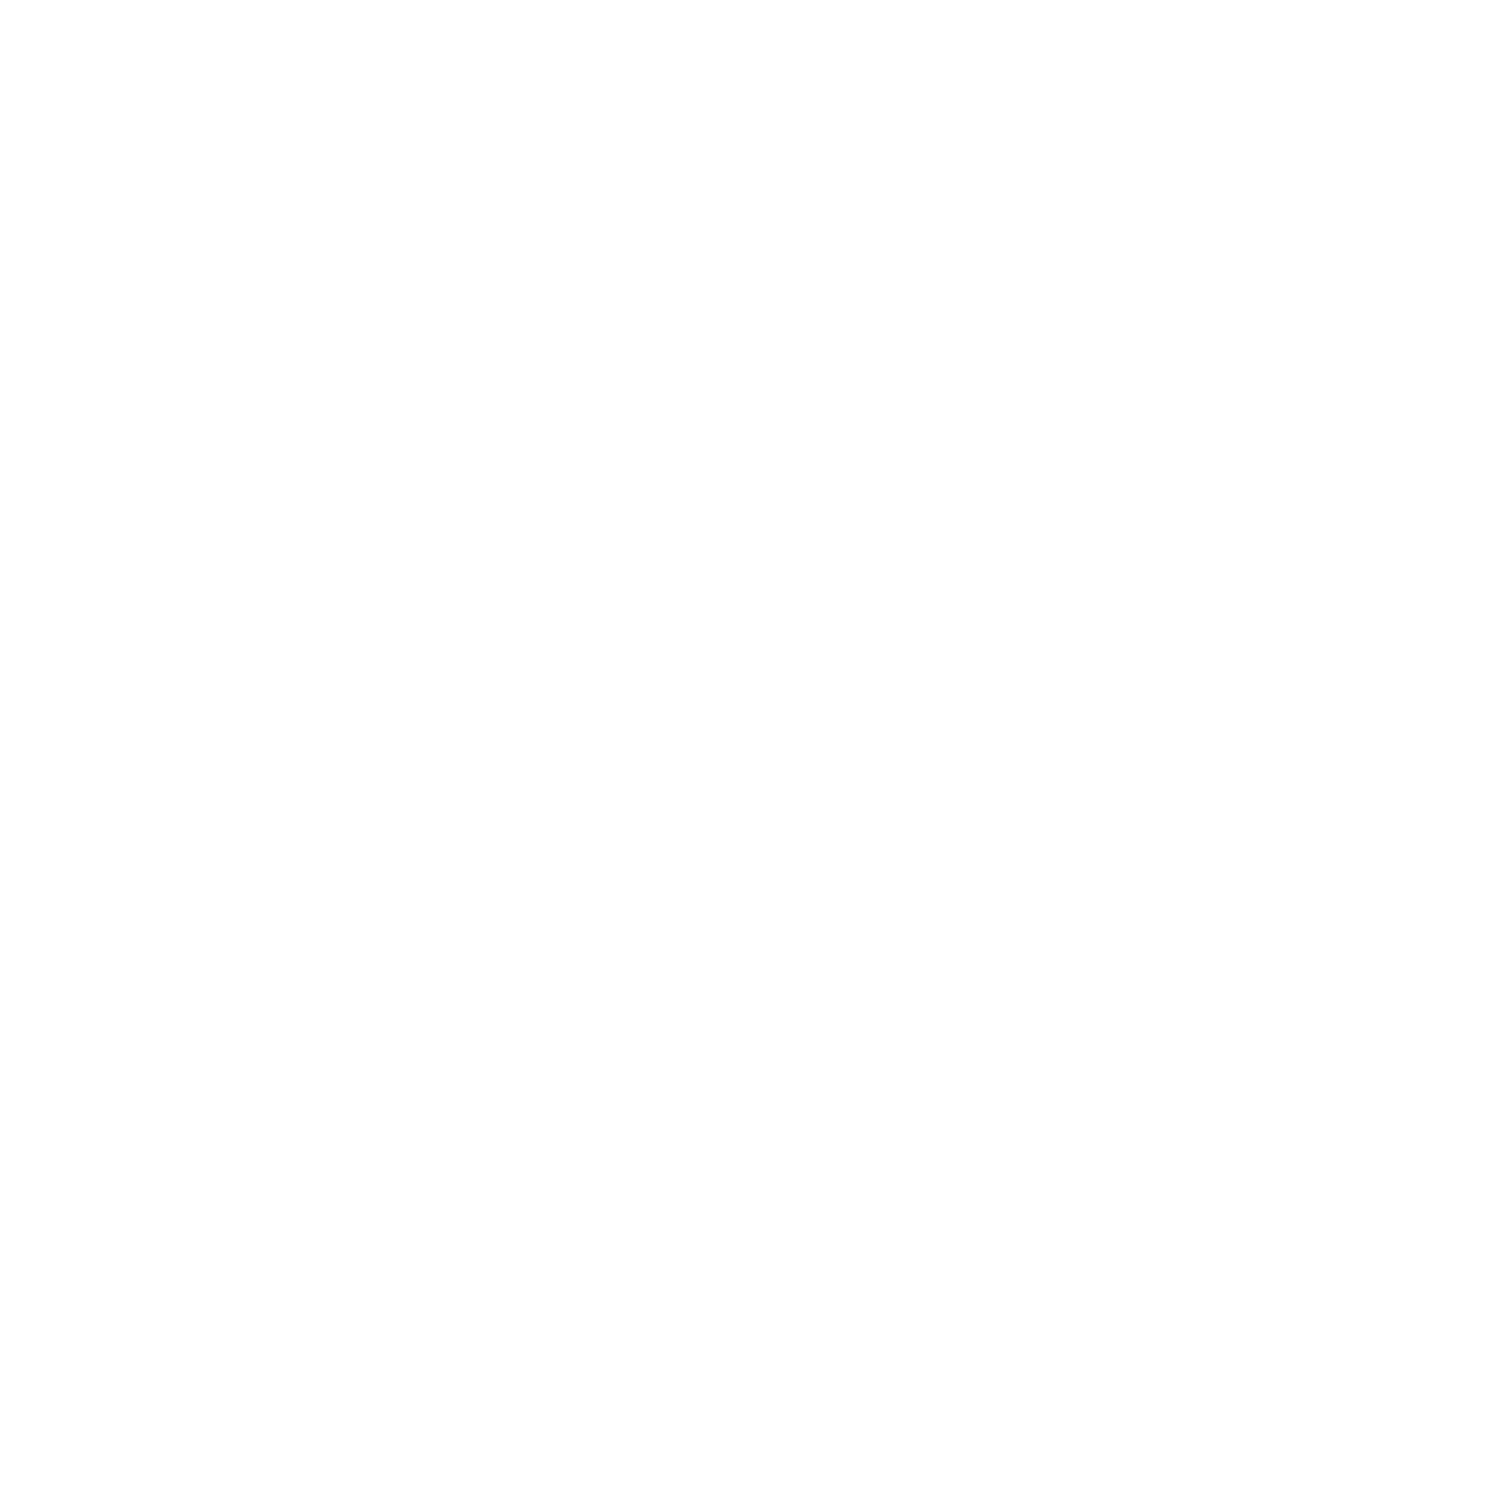 THE BARBER STUDIO